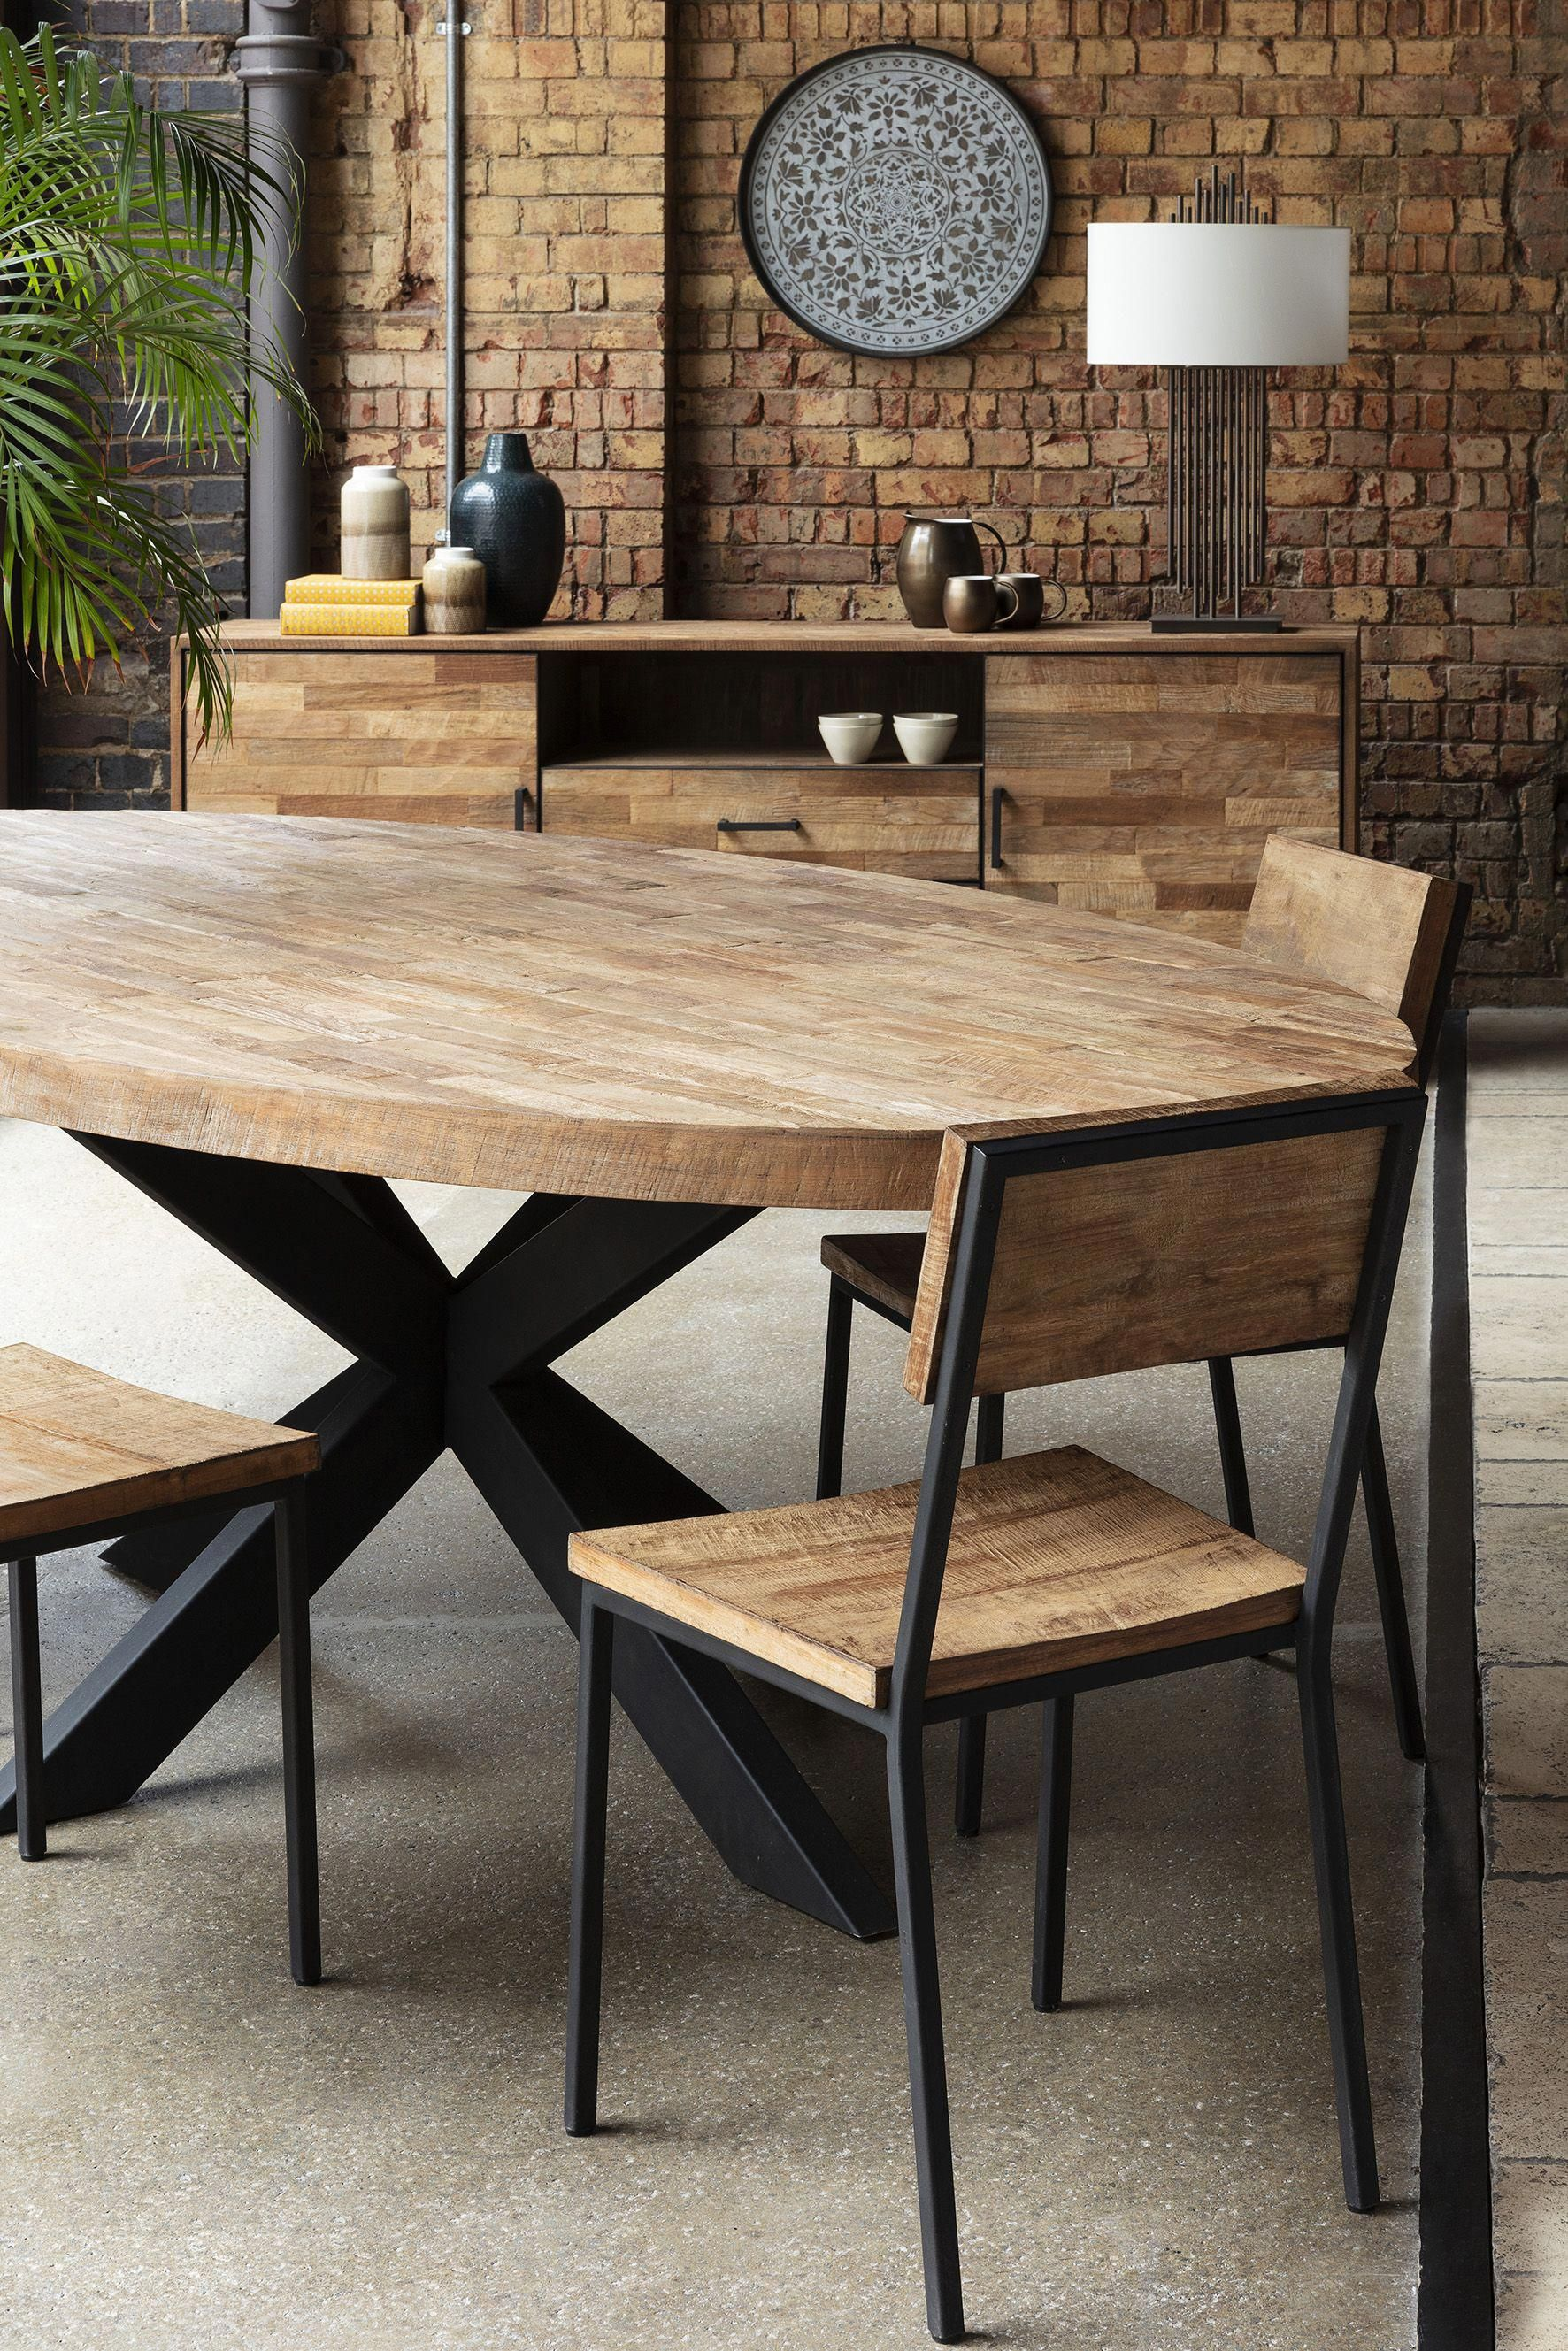 Baxter Bond Oval Dining Table Combining Elements Of Nature With